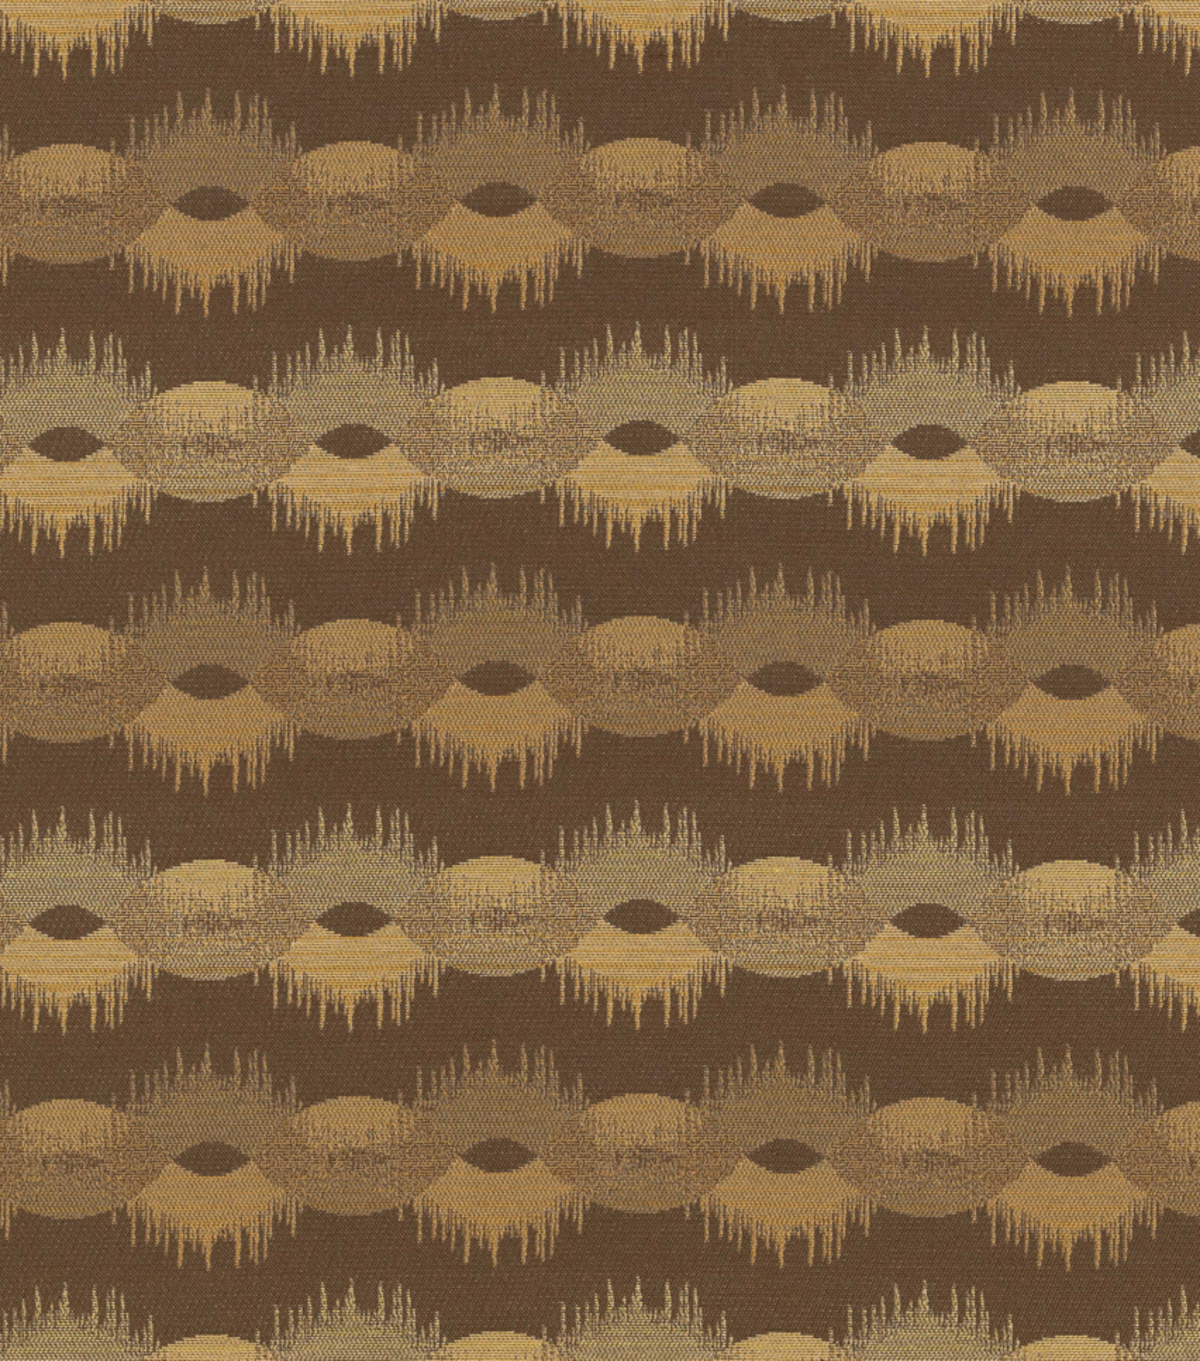 Home Decor 8\u0022x8\u0022 Fabric Swatch-Helixir Mocha